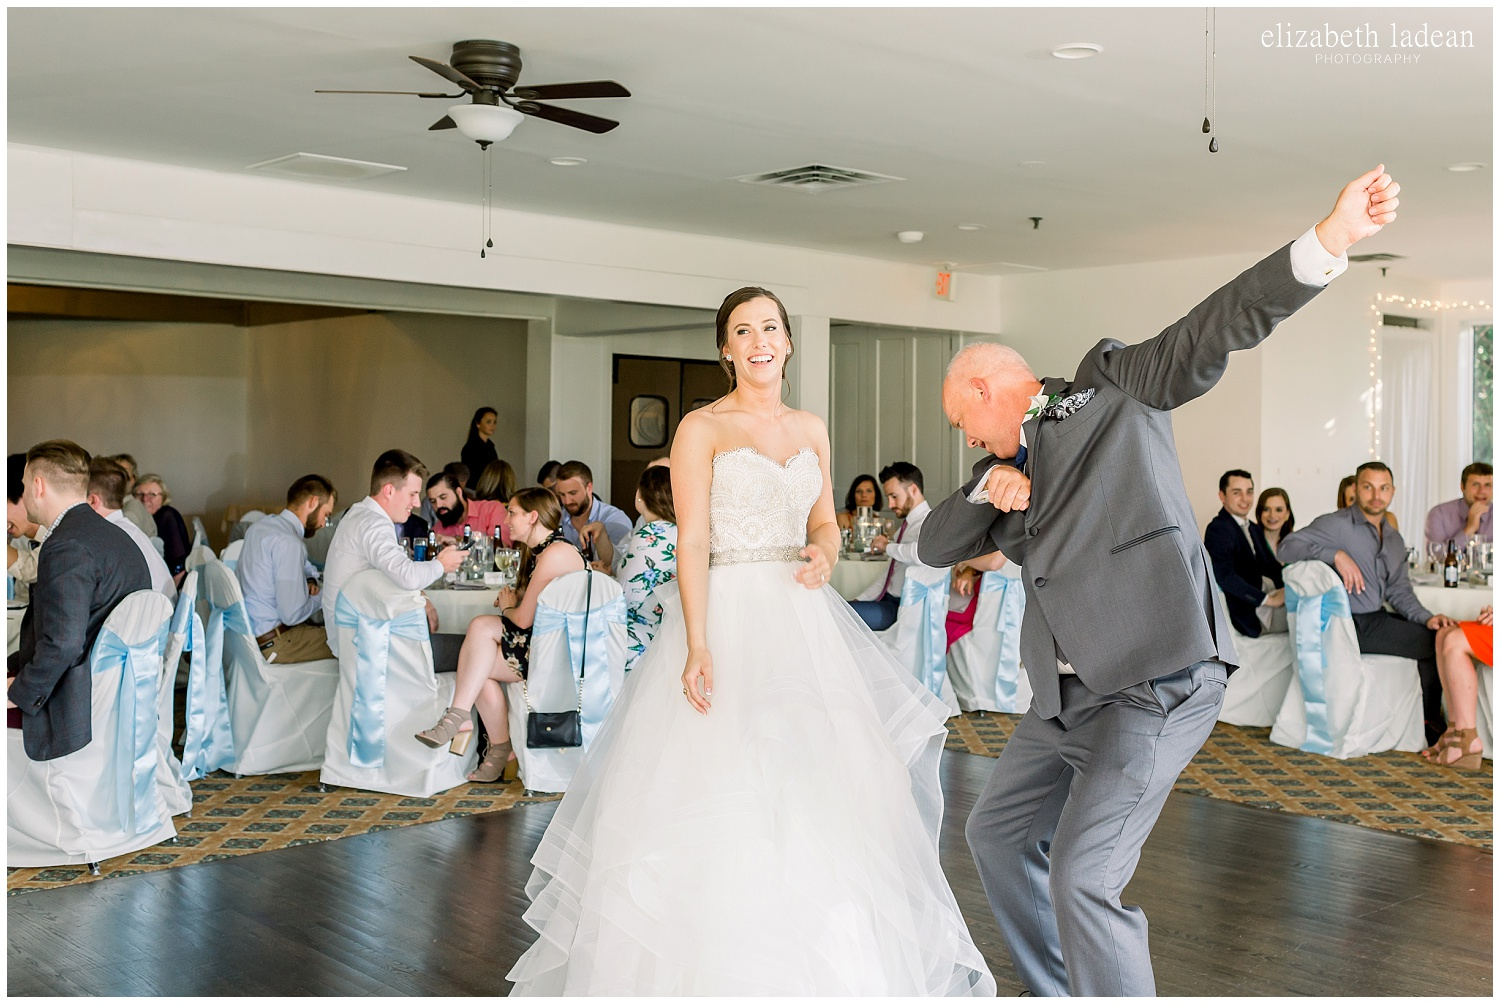 -behind-the-scenes-of-a-wedding-photographer-2018-elizabeth-ladean-photography-photo_3468.jpg